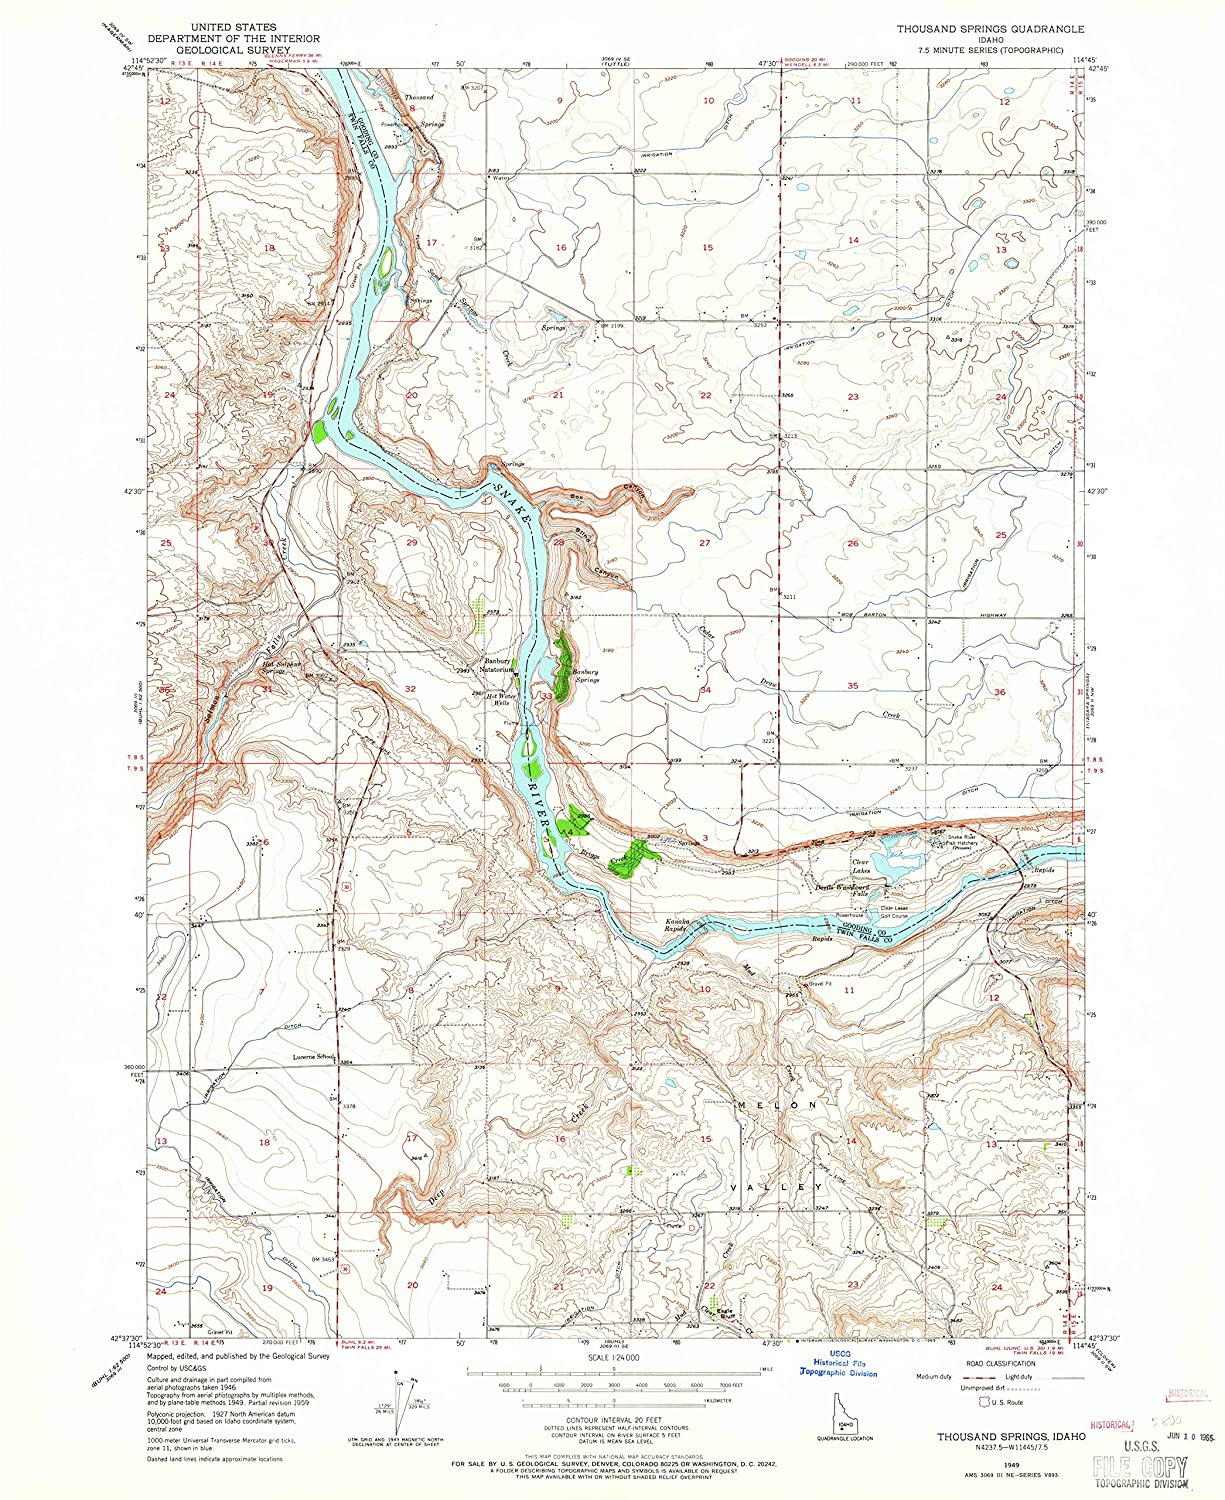 Map Print - Thousand Springs, Idaho (1949), 1:24000 Scale - 24